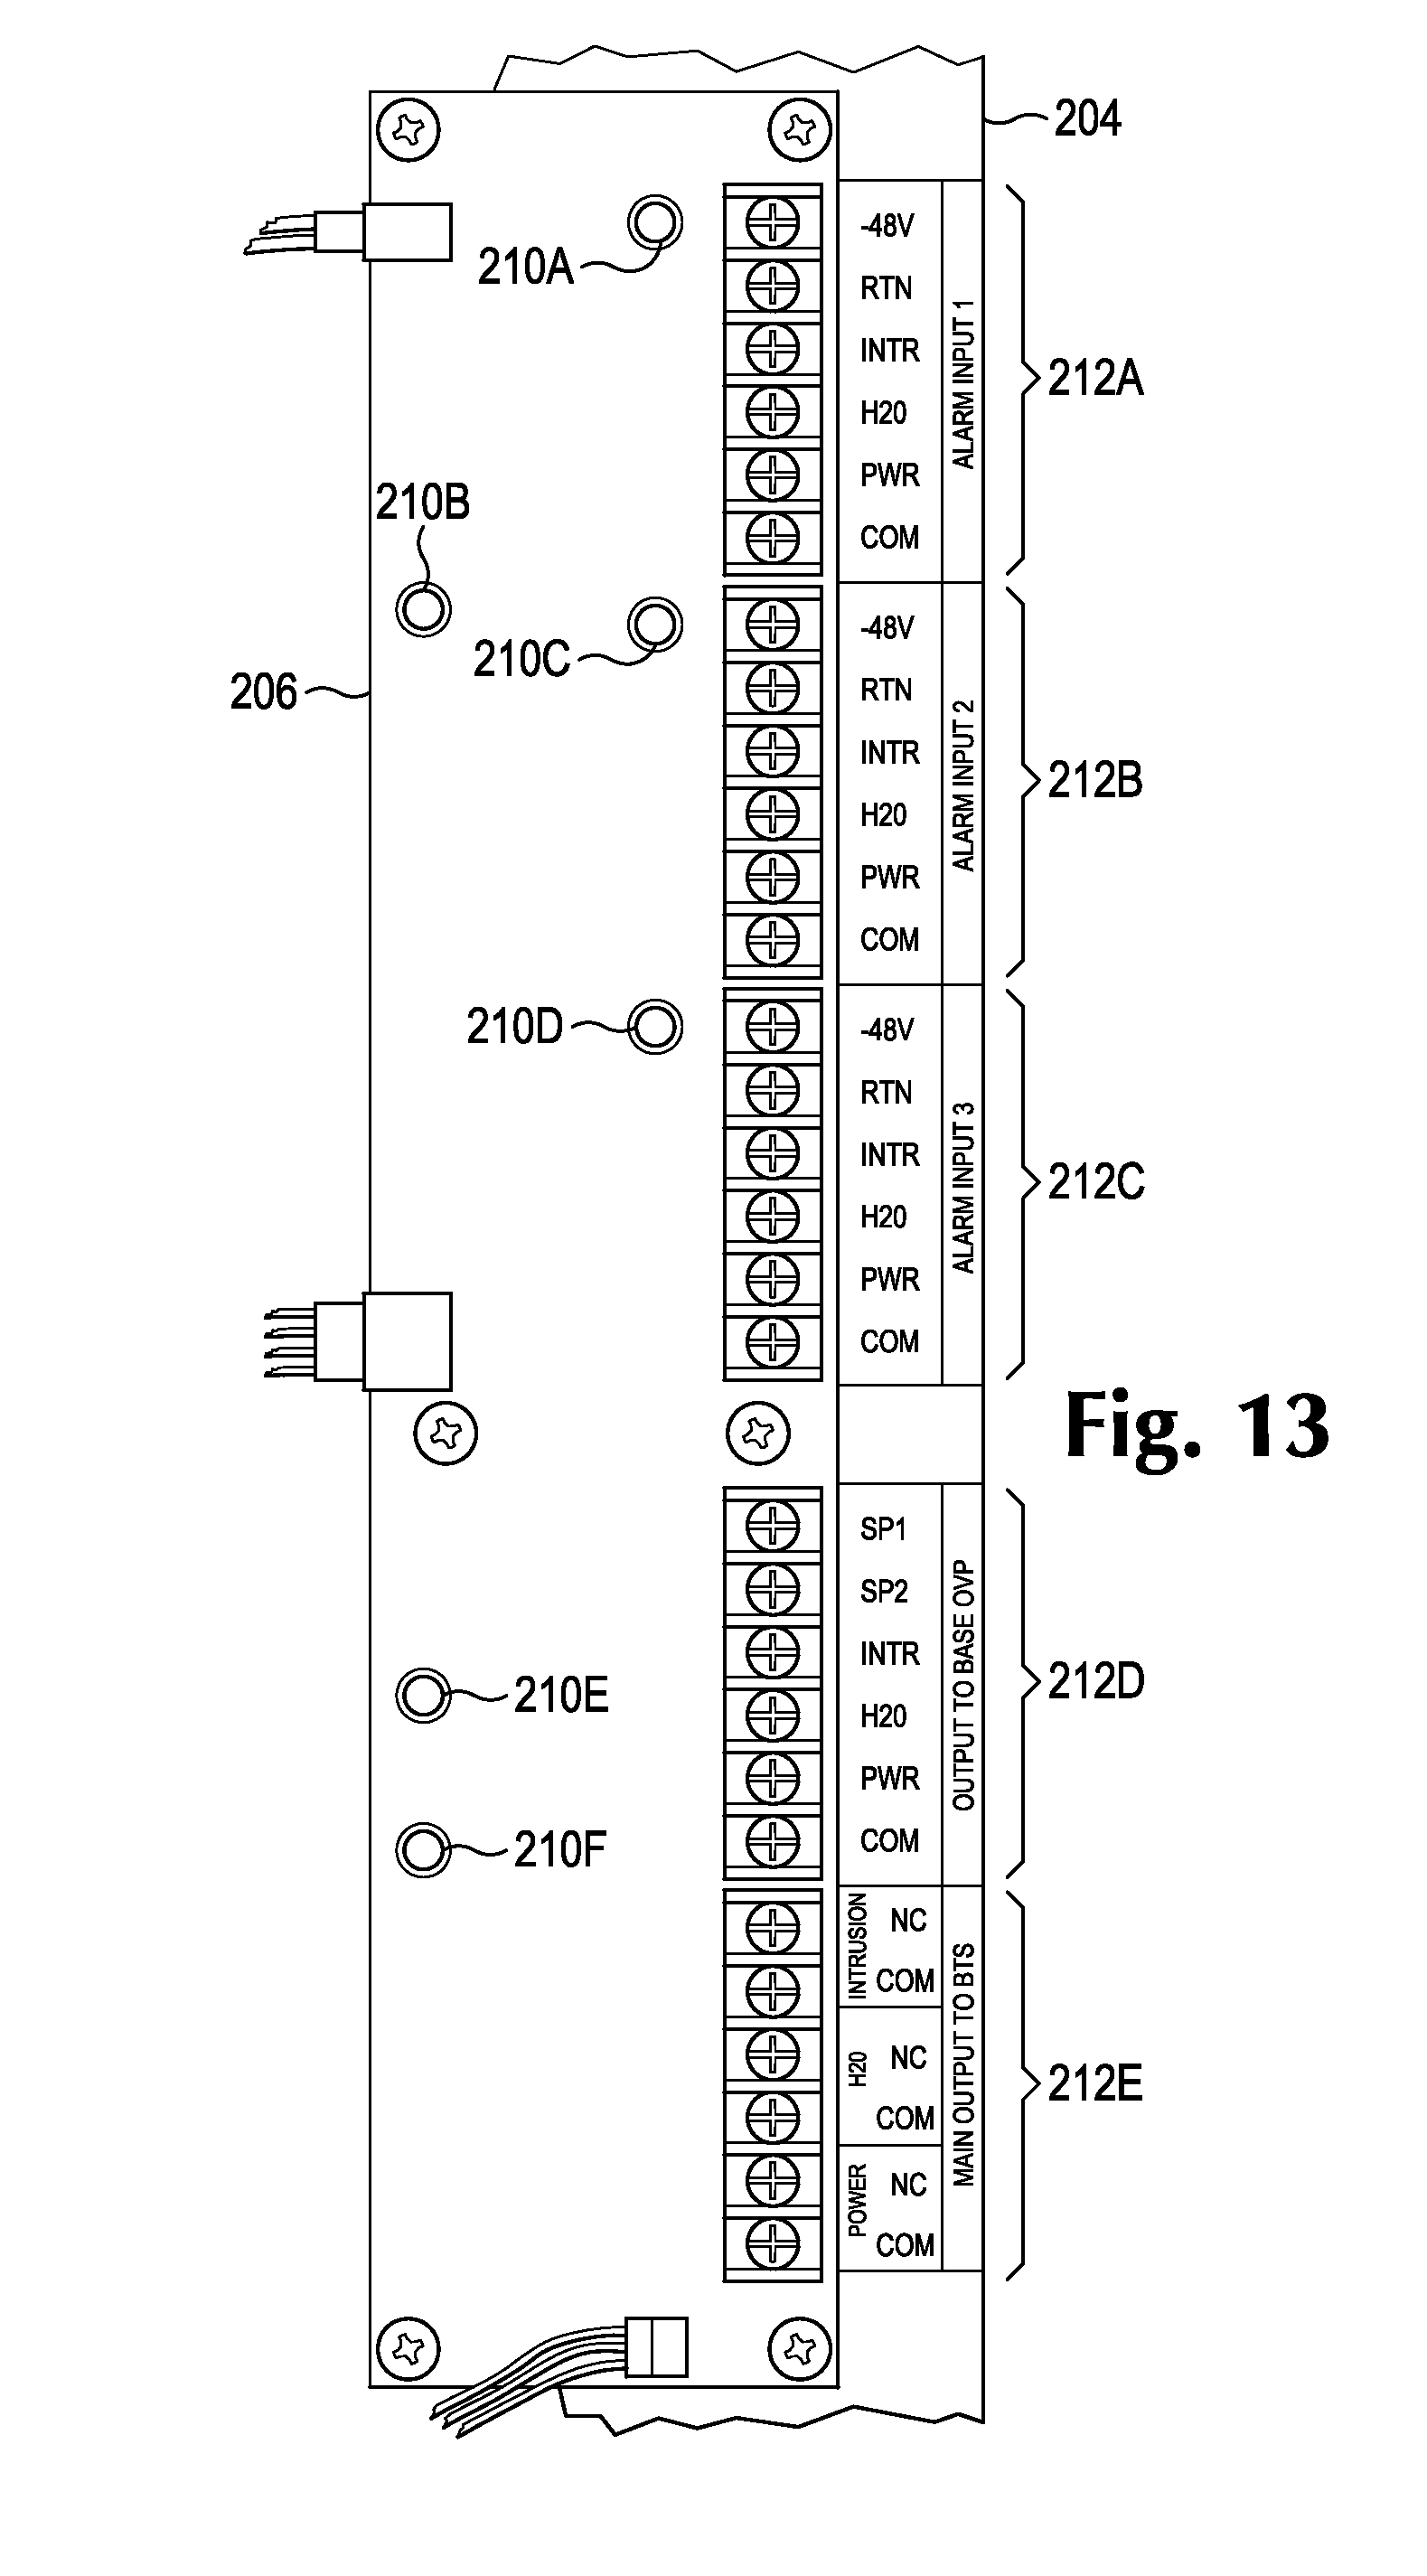 patent us overvoltage protection and monitoring patent drawing